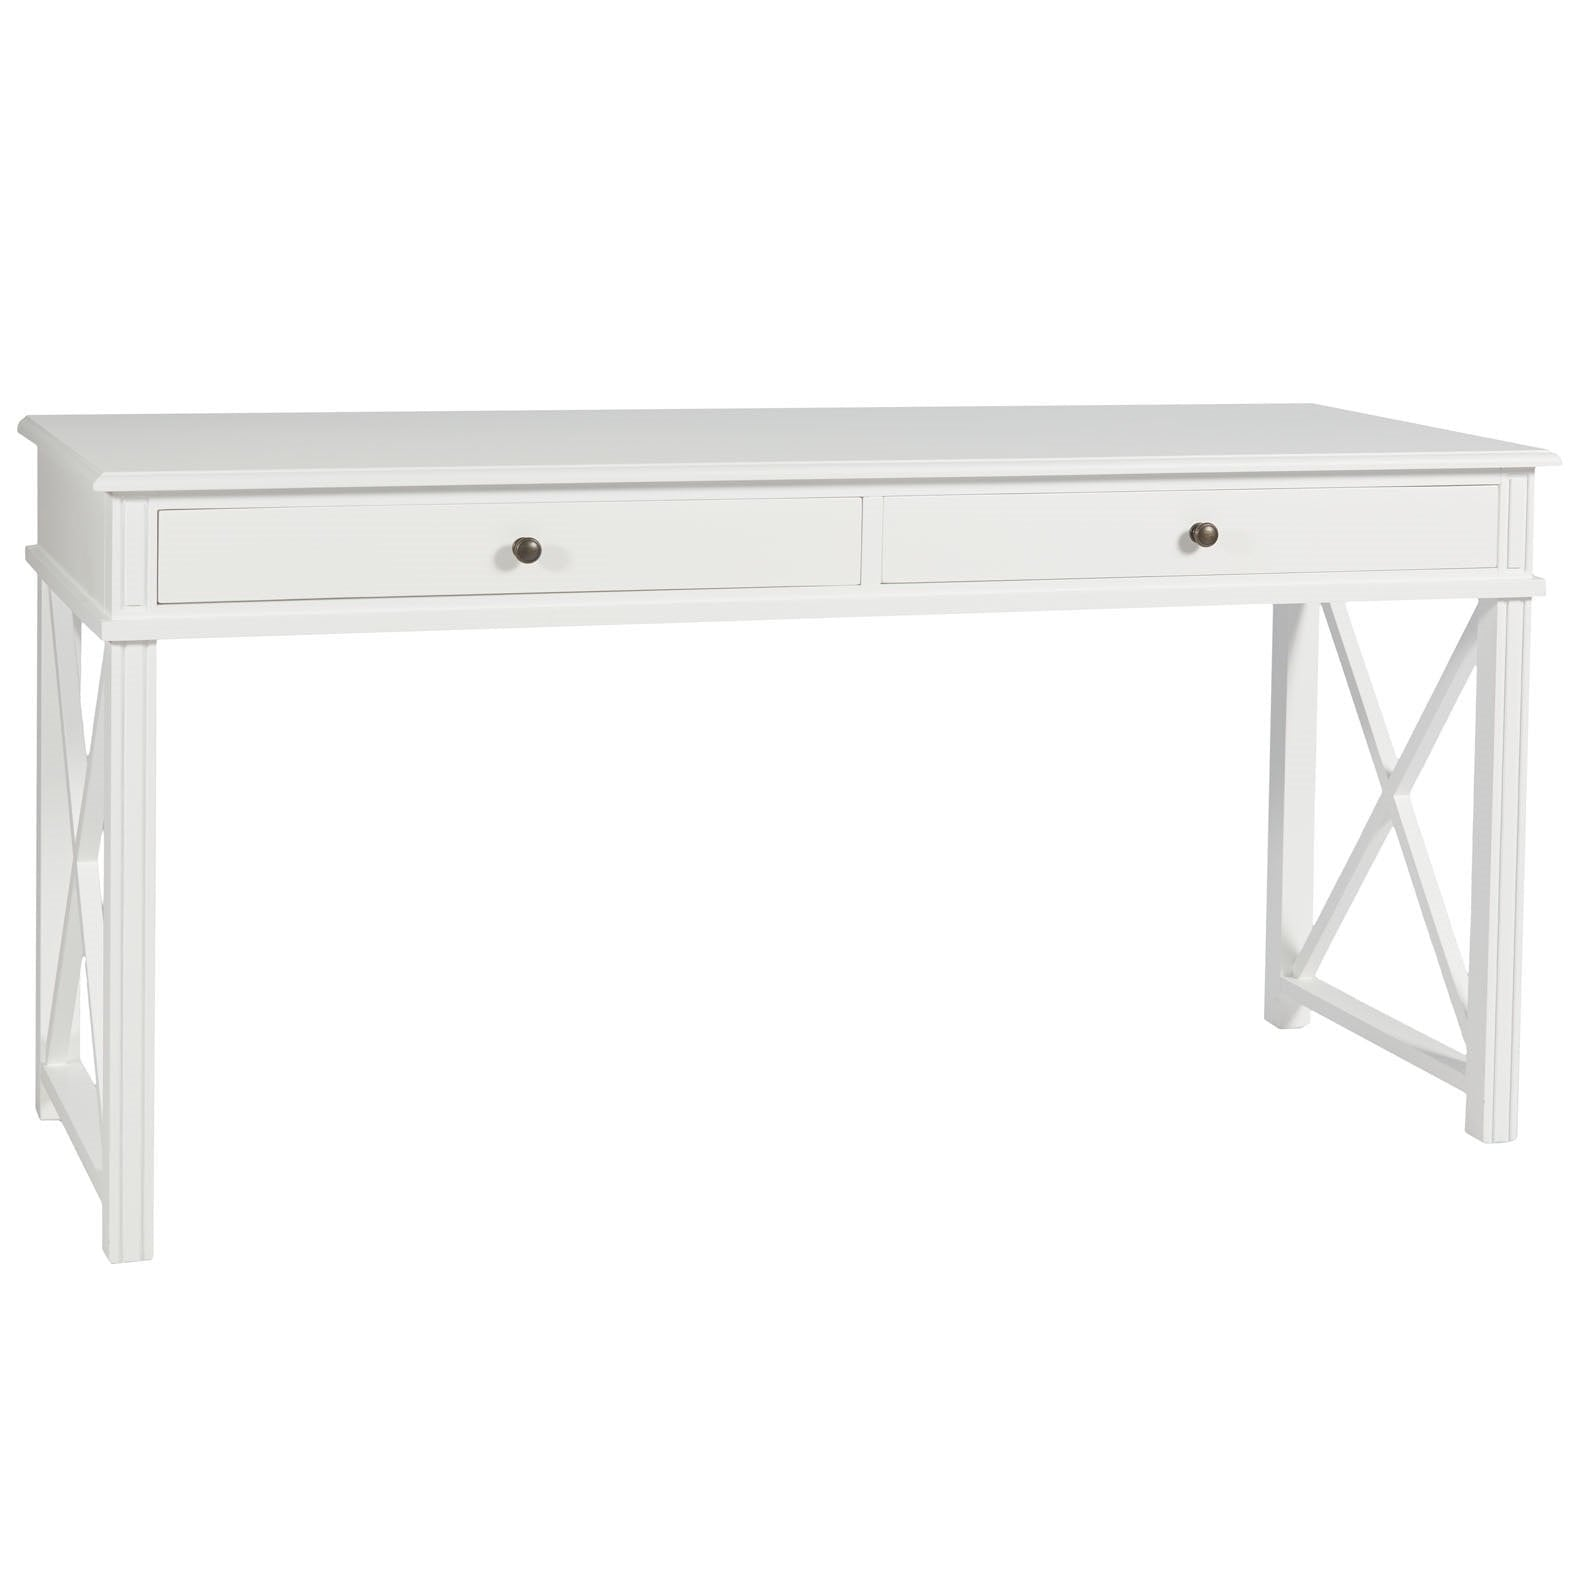 Sydney Hamptons Desk - White